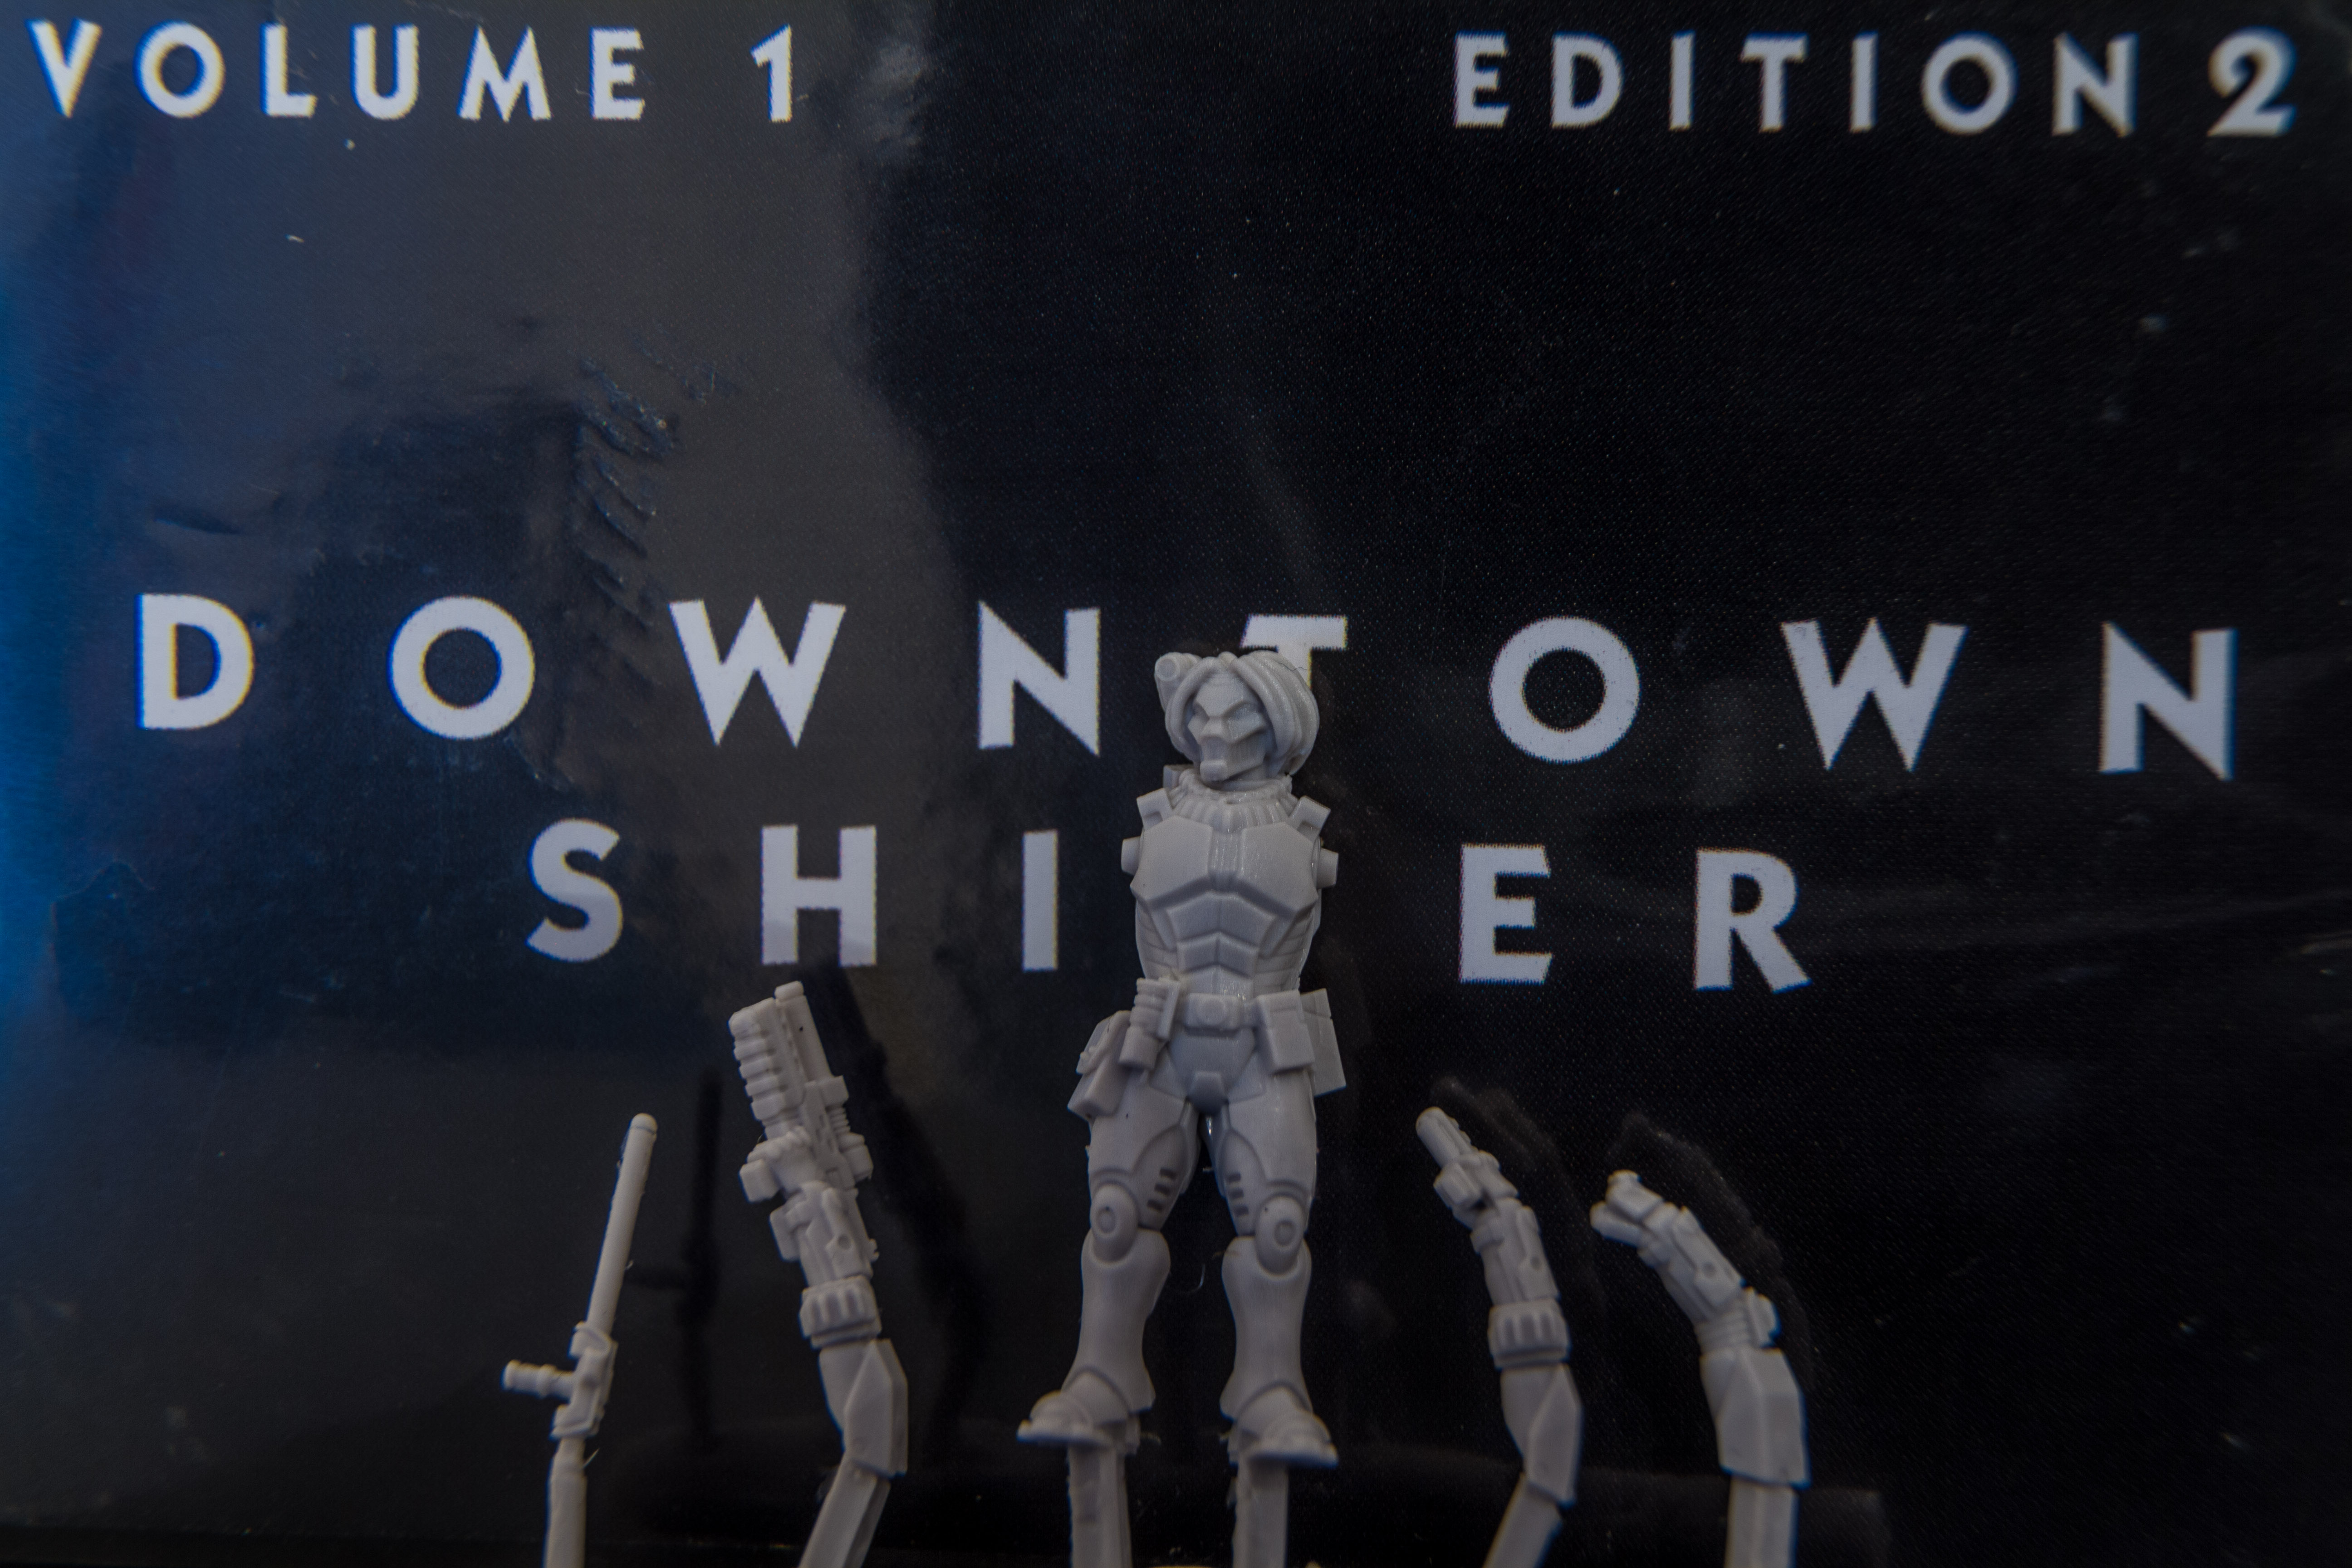 Downtown SHIVER Front